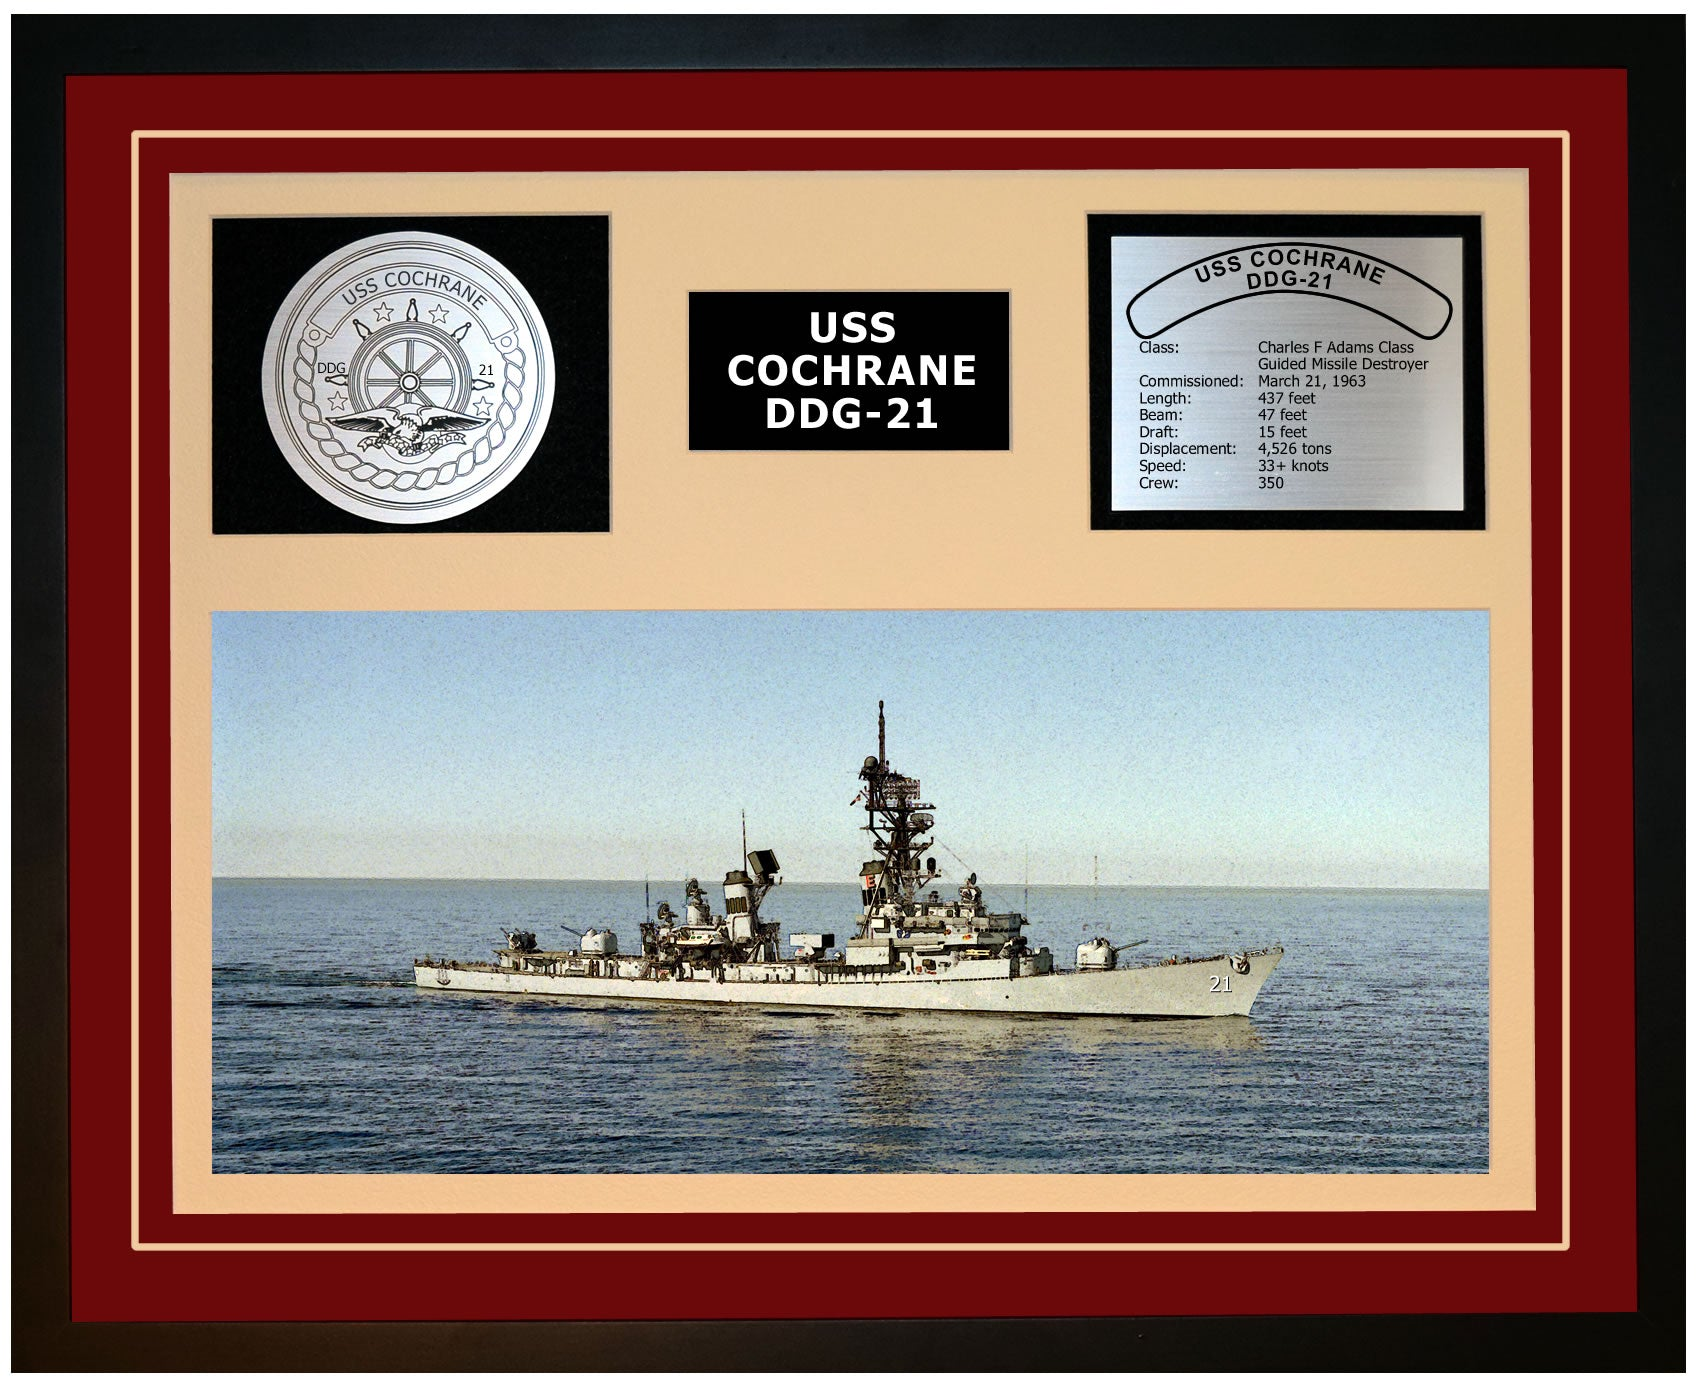 USS COCHRANE DDG-21 Framed Navy Ship Display Burgundy